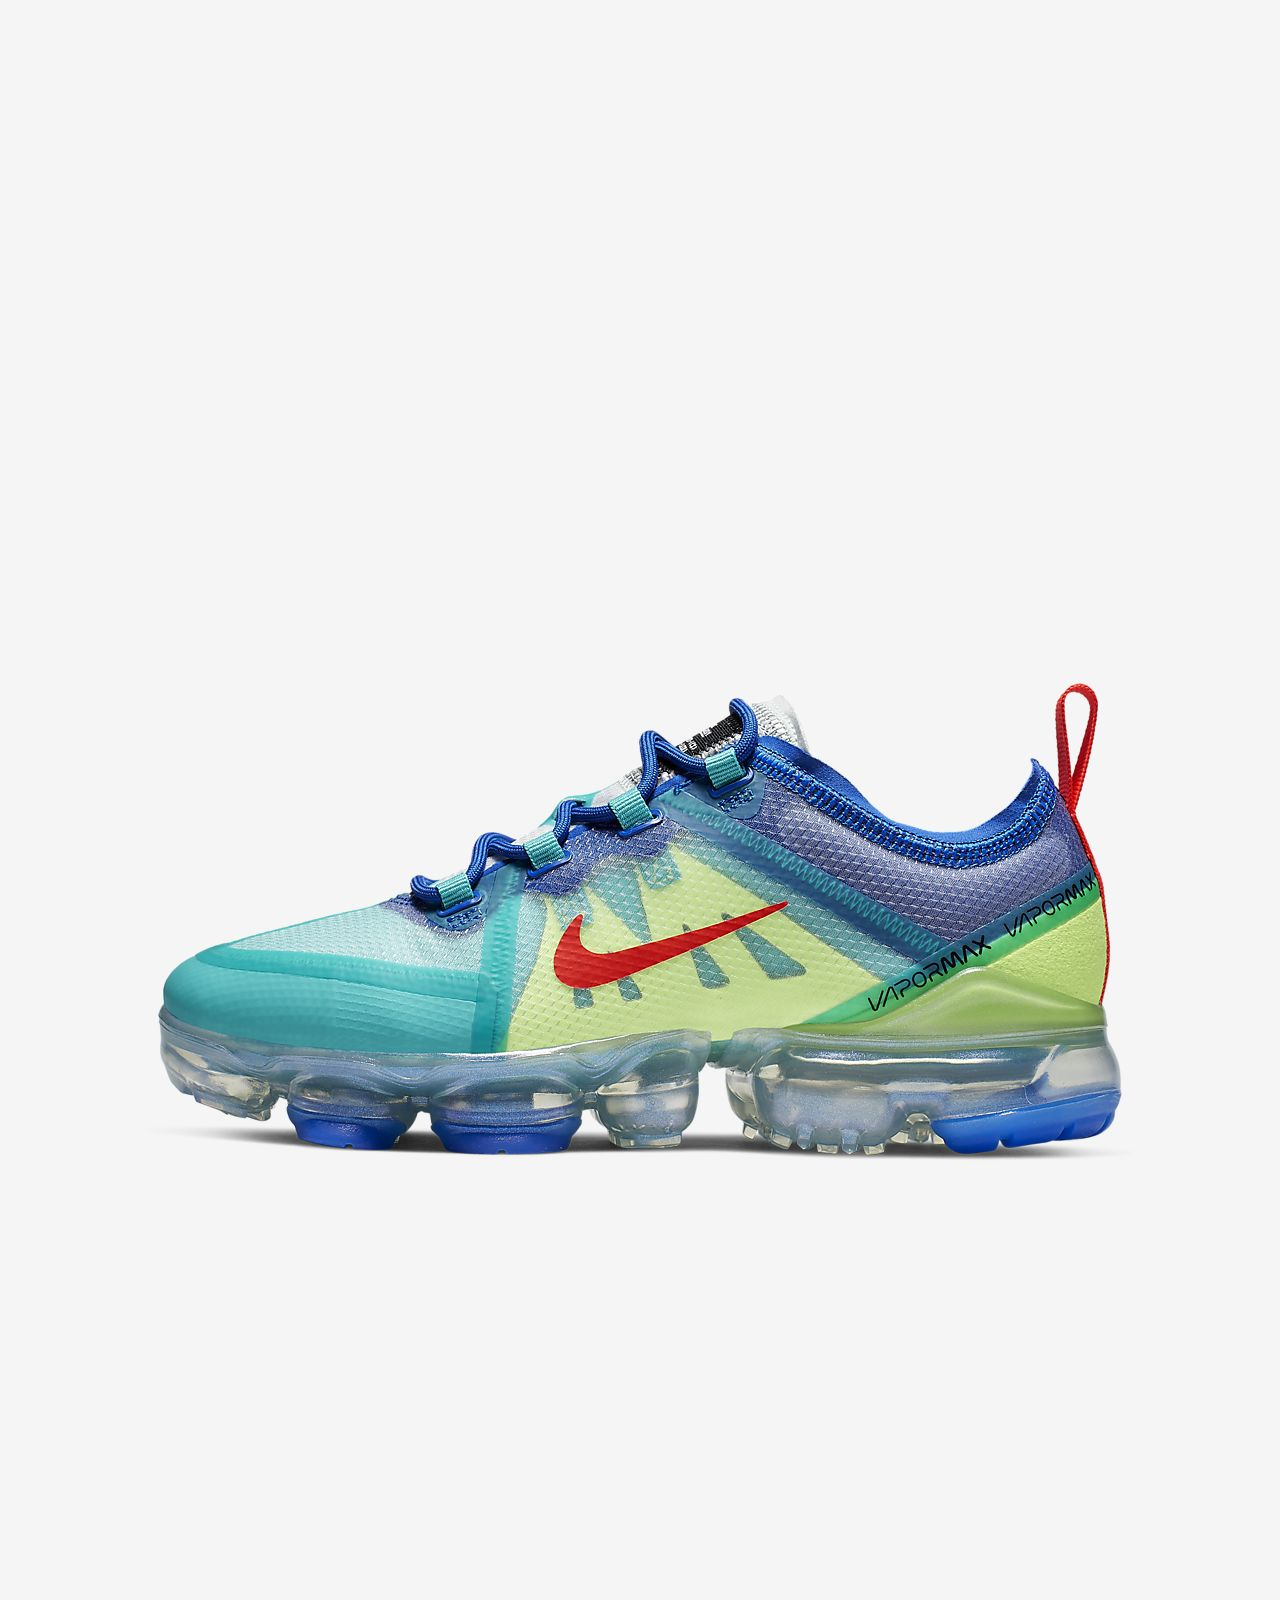 new arrival 66e71 21707 Nike Air VaporMax 2019 Big Kids' Shoe